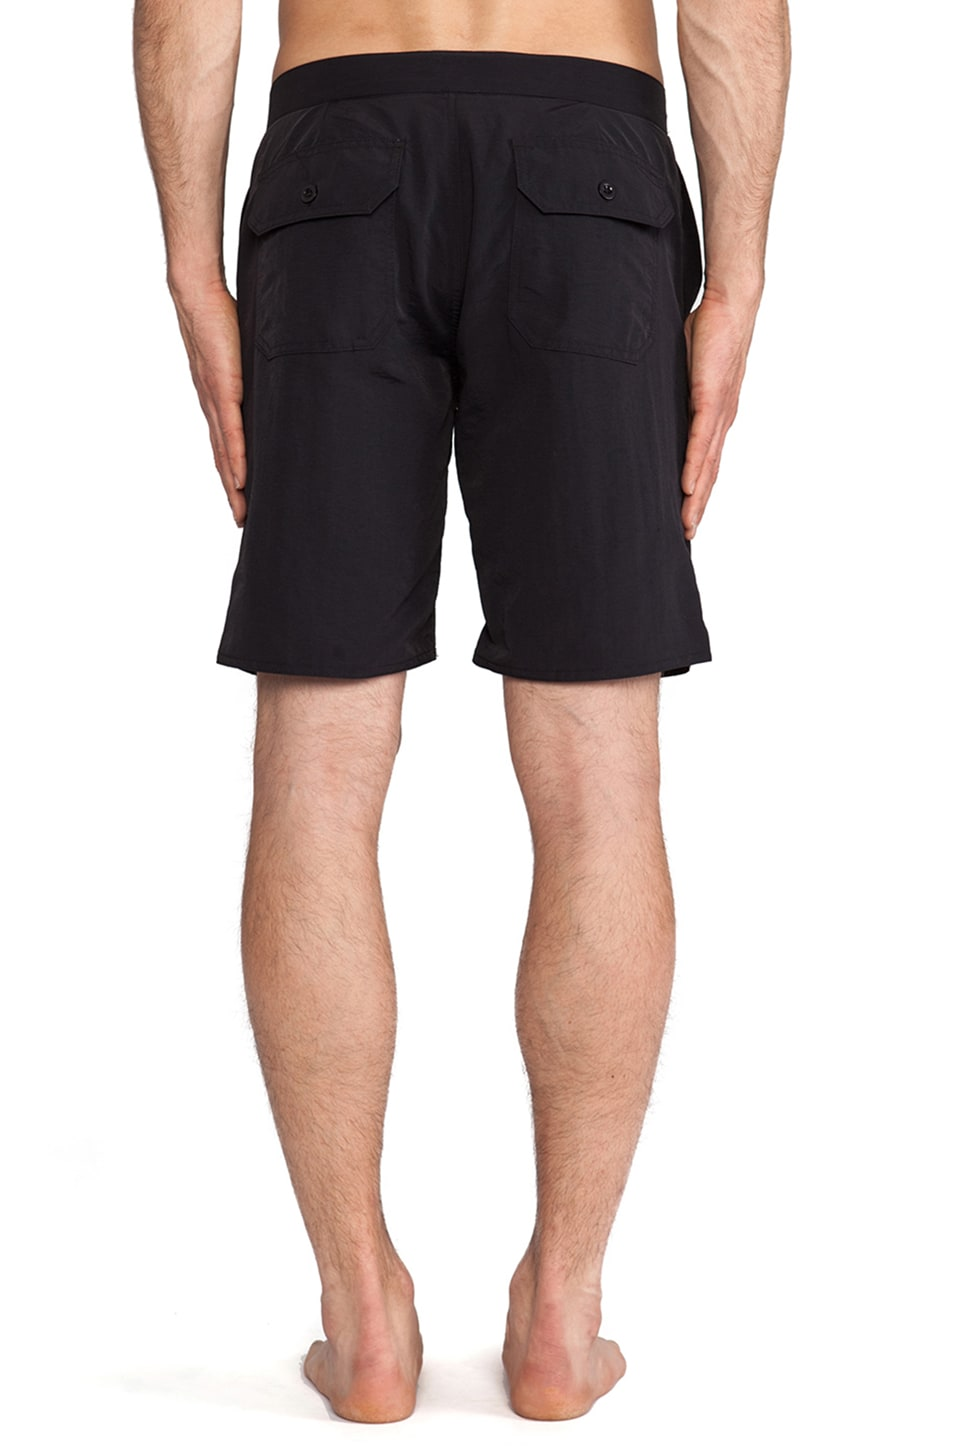 "Obey Inlet II Street Trunk 9"" Inseam in Black"